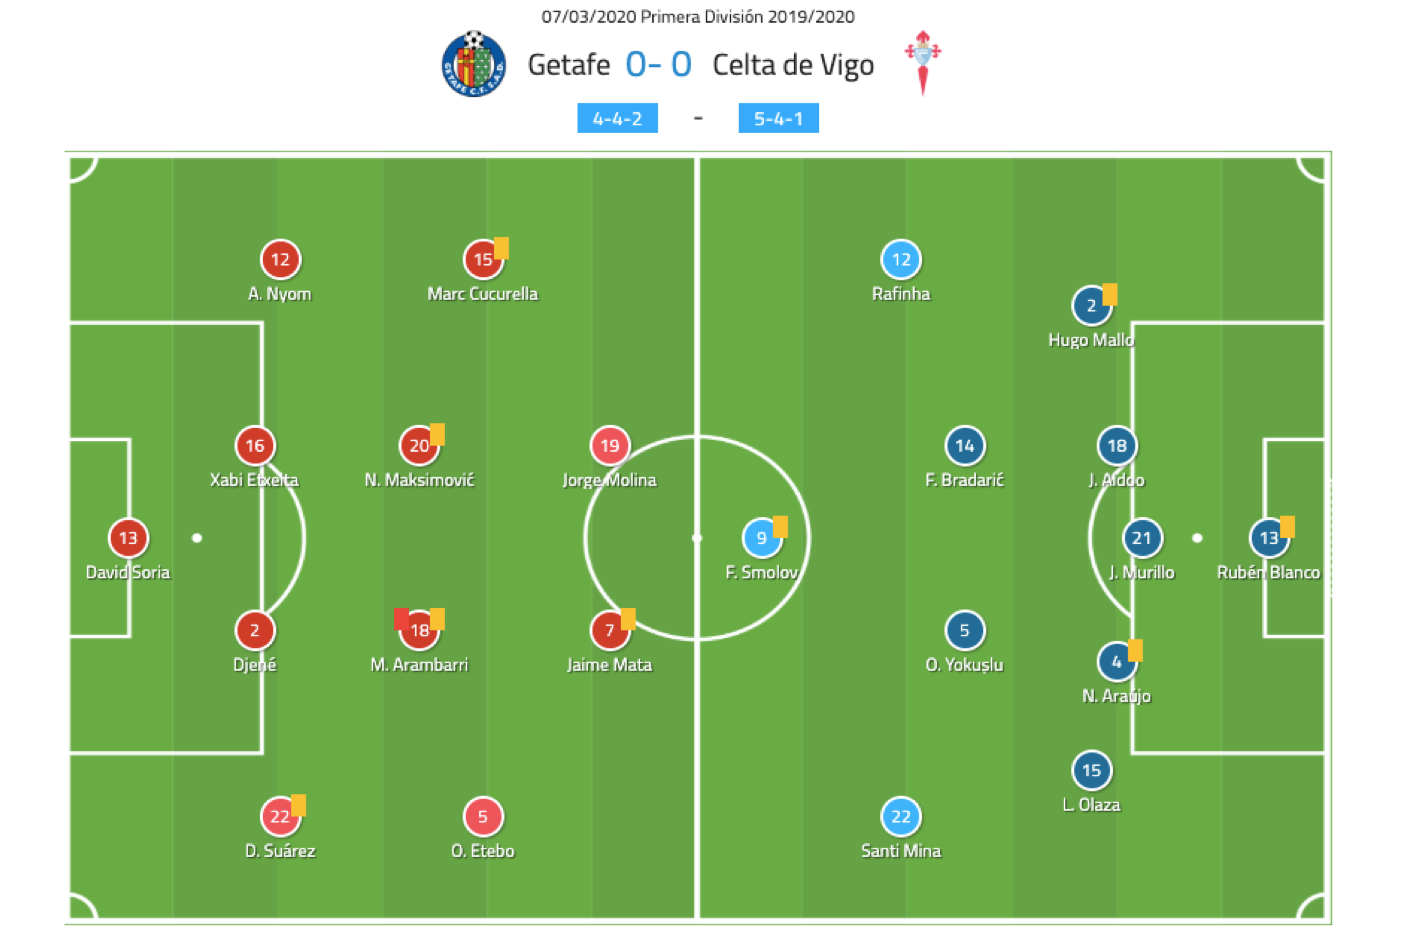 La Liga 2019/2020: Getafe vs Celta Vigo - Tactical analysis tactics